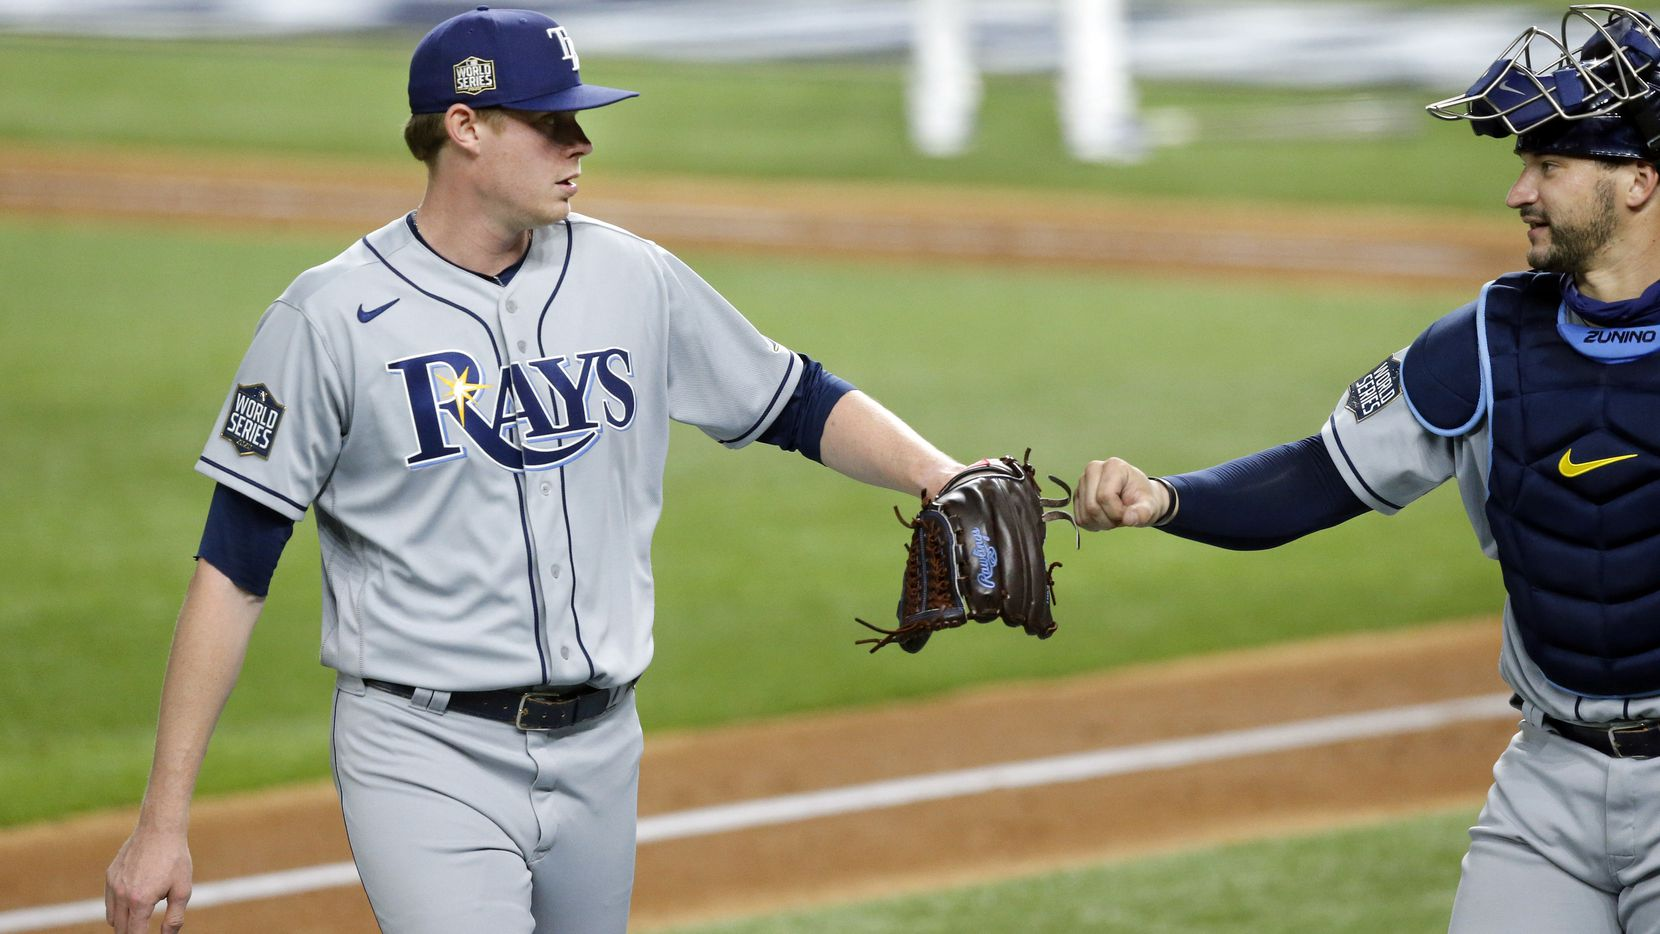 Tampa Bay Rays relief pitcher Peter Fairbanks (29) receives a fist bump from catcher Mike Zunino (10) after getting out of the seventh inning against the Los Angeles Dodgers in Game 2 of the World Series at Globe Life Field in Arlington, Wednesday, October 21, 2020.